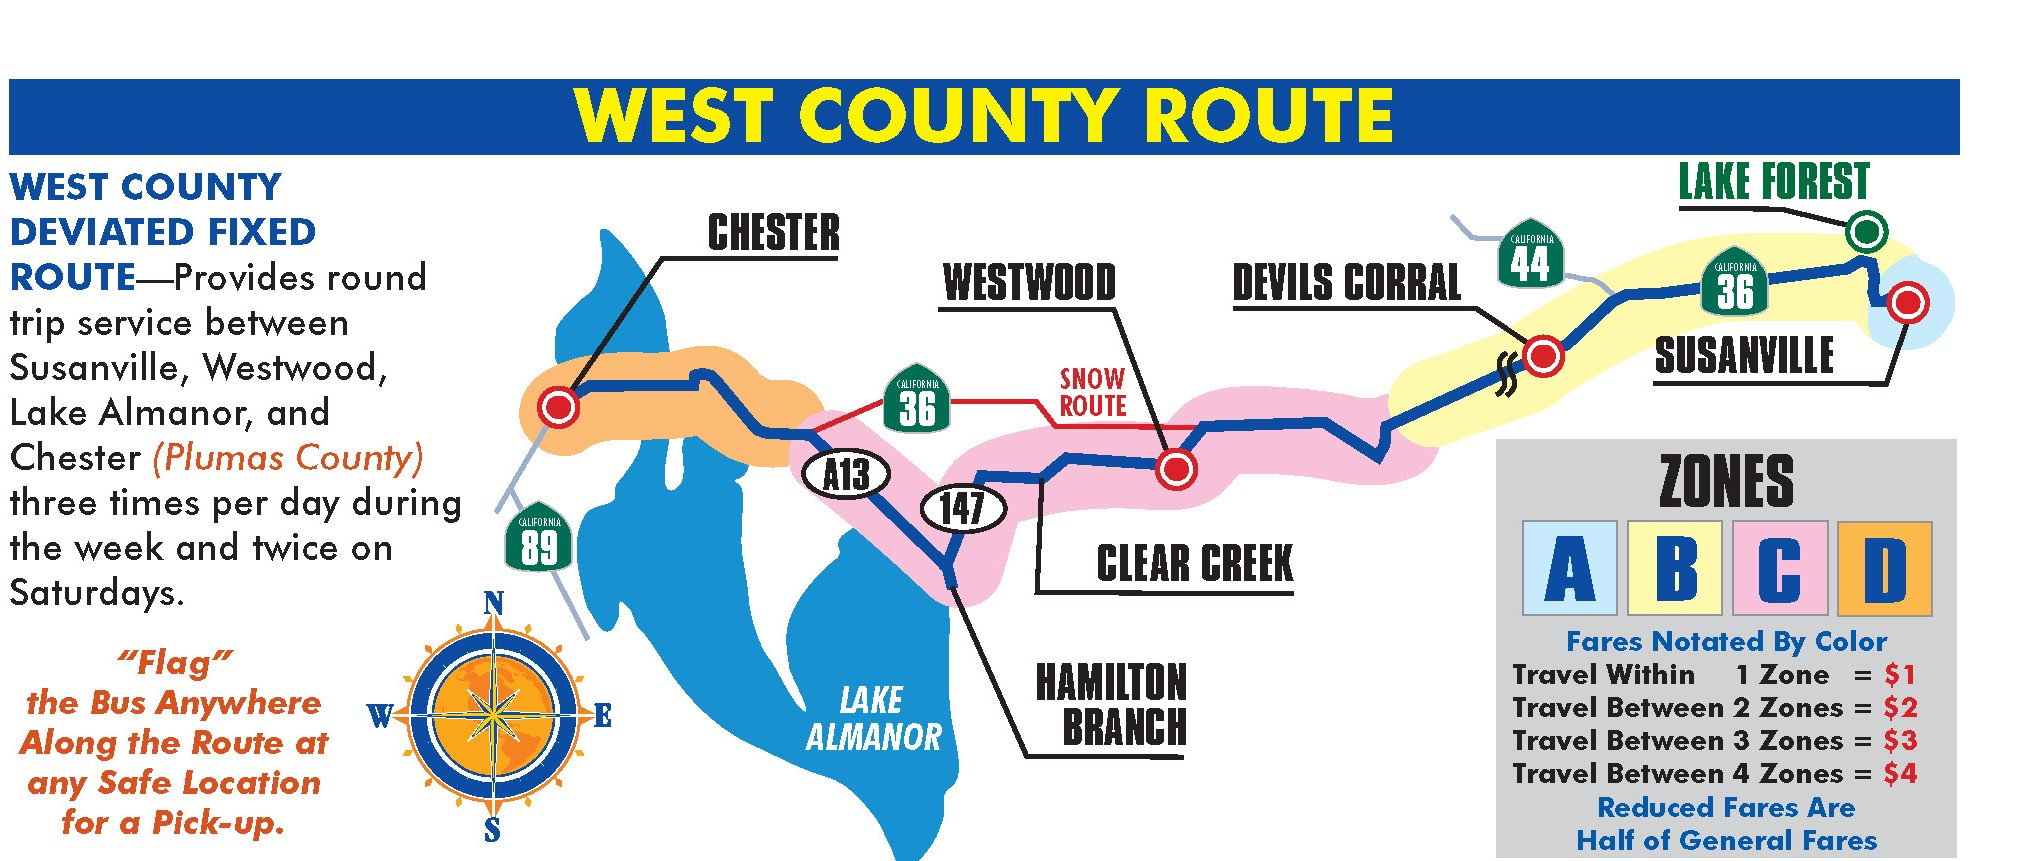 West County Route